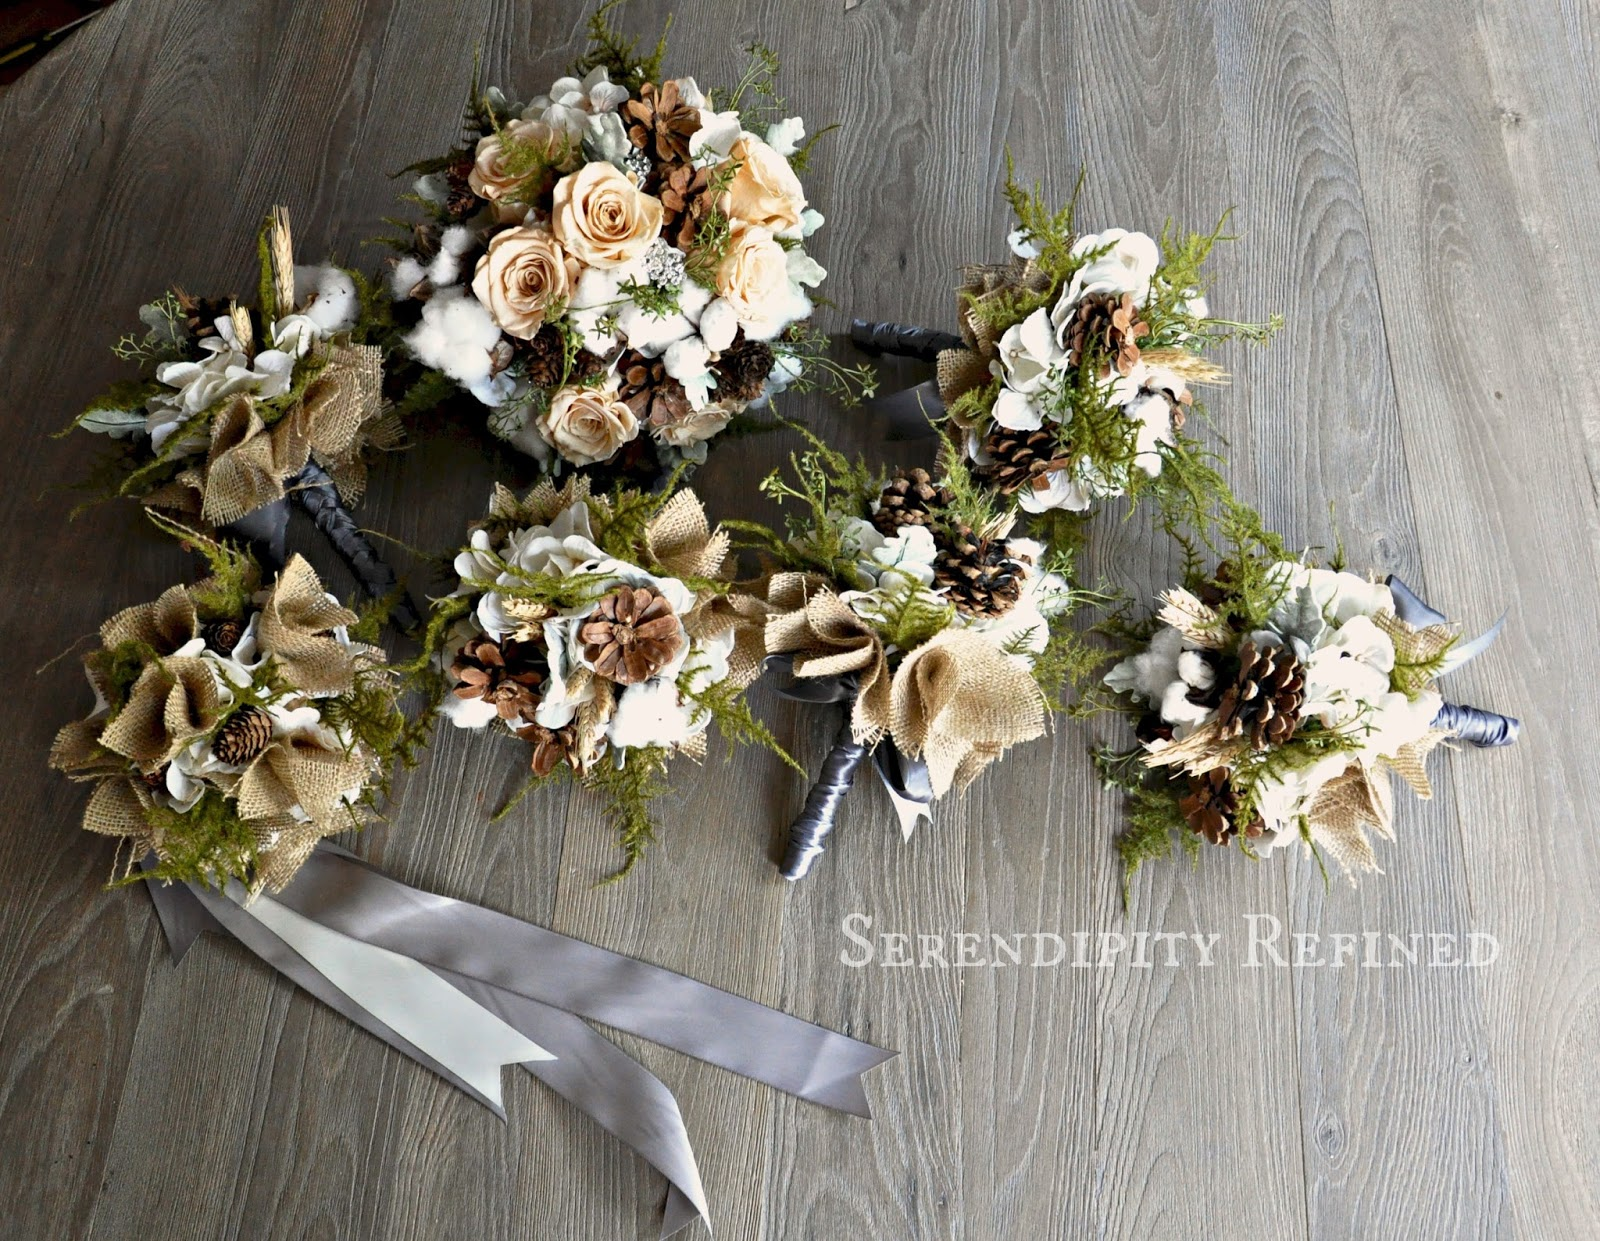 Serendipity Refined Blog Flowers For An Autumn Wedding Pinecones